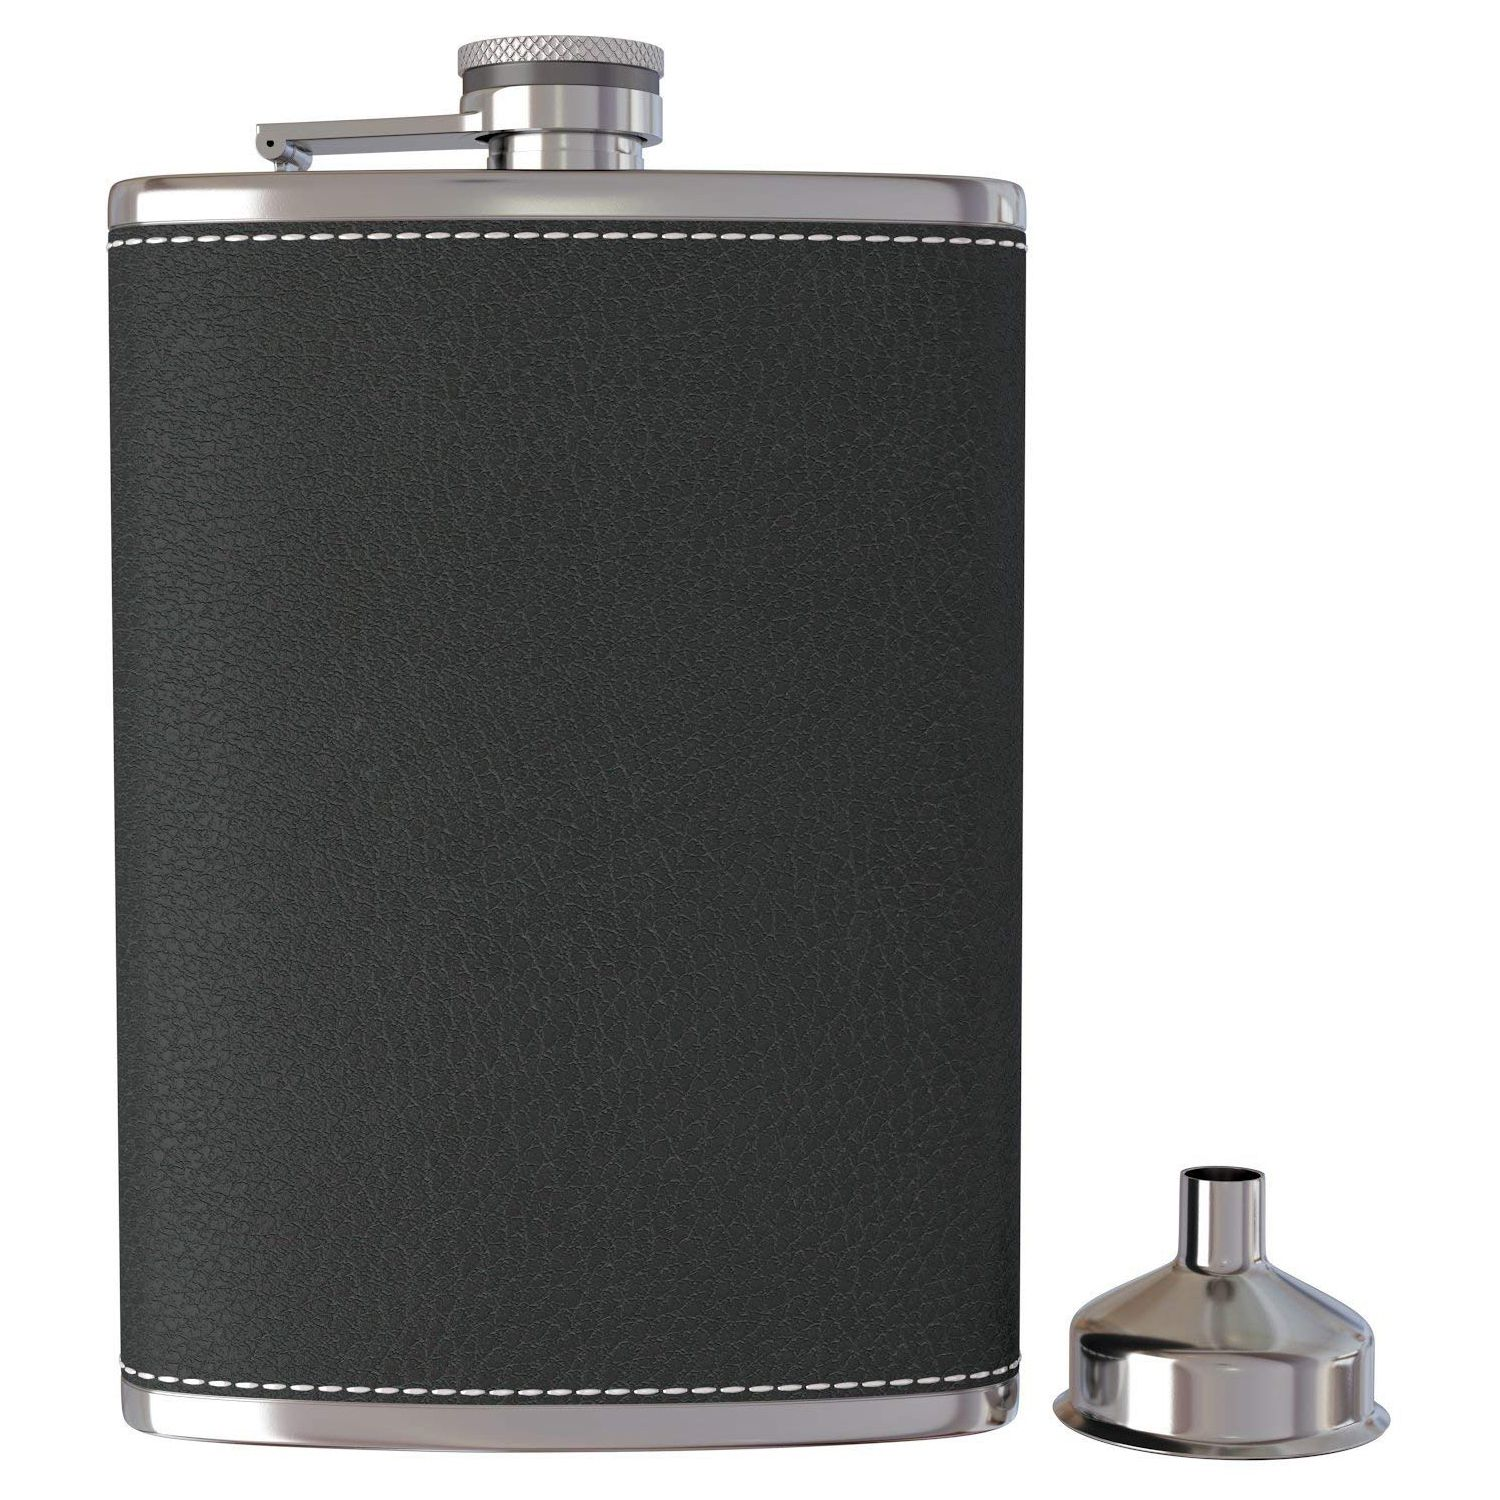 Pocket Hip Flask 8 Oz with Funnel Stainless Steel with Black Leather Wrapped Cover and Leak Proof - Fits any Suit for Discrete